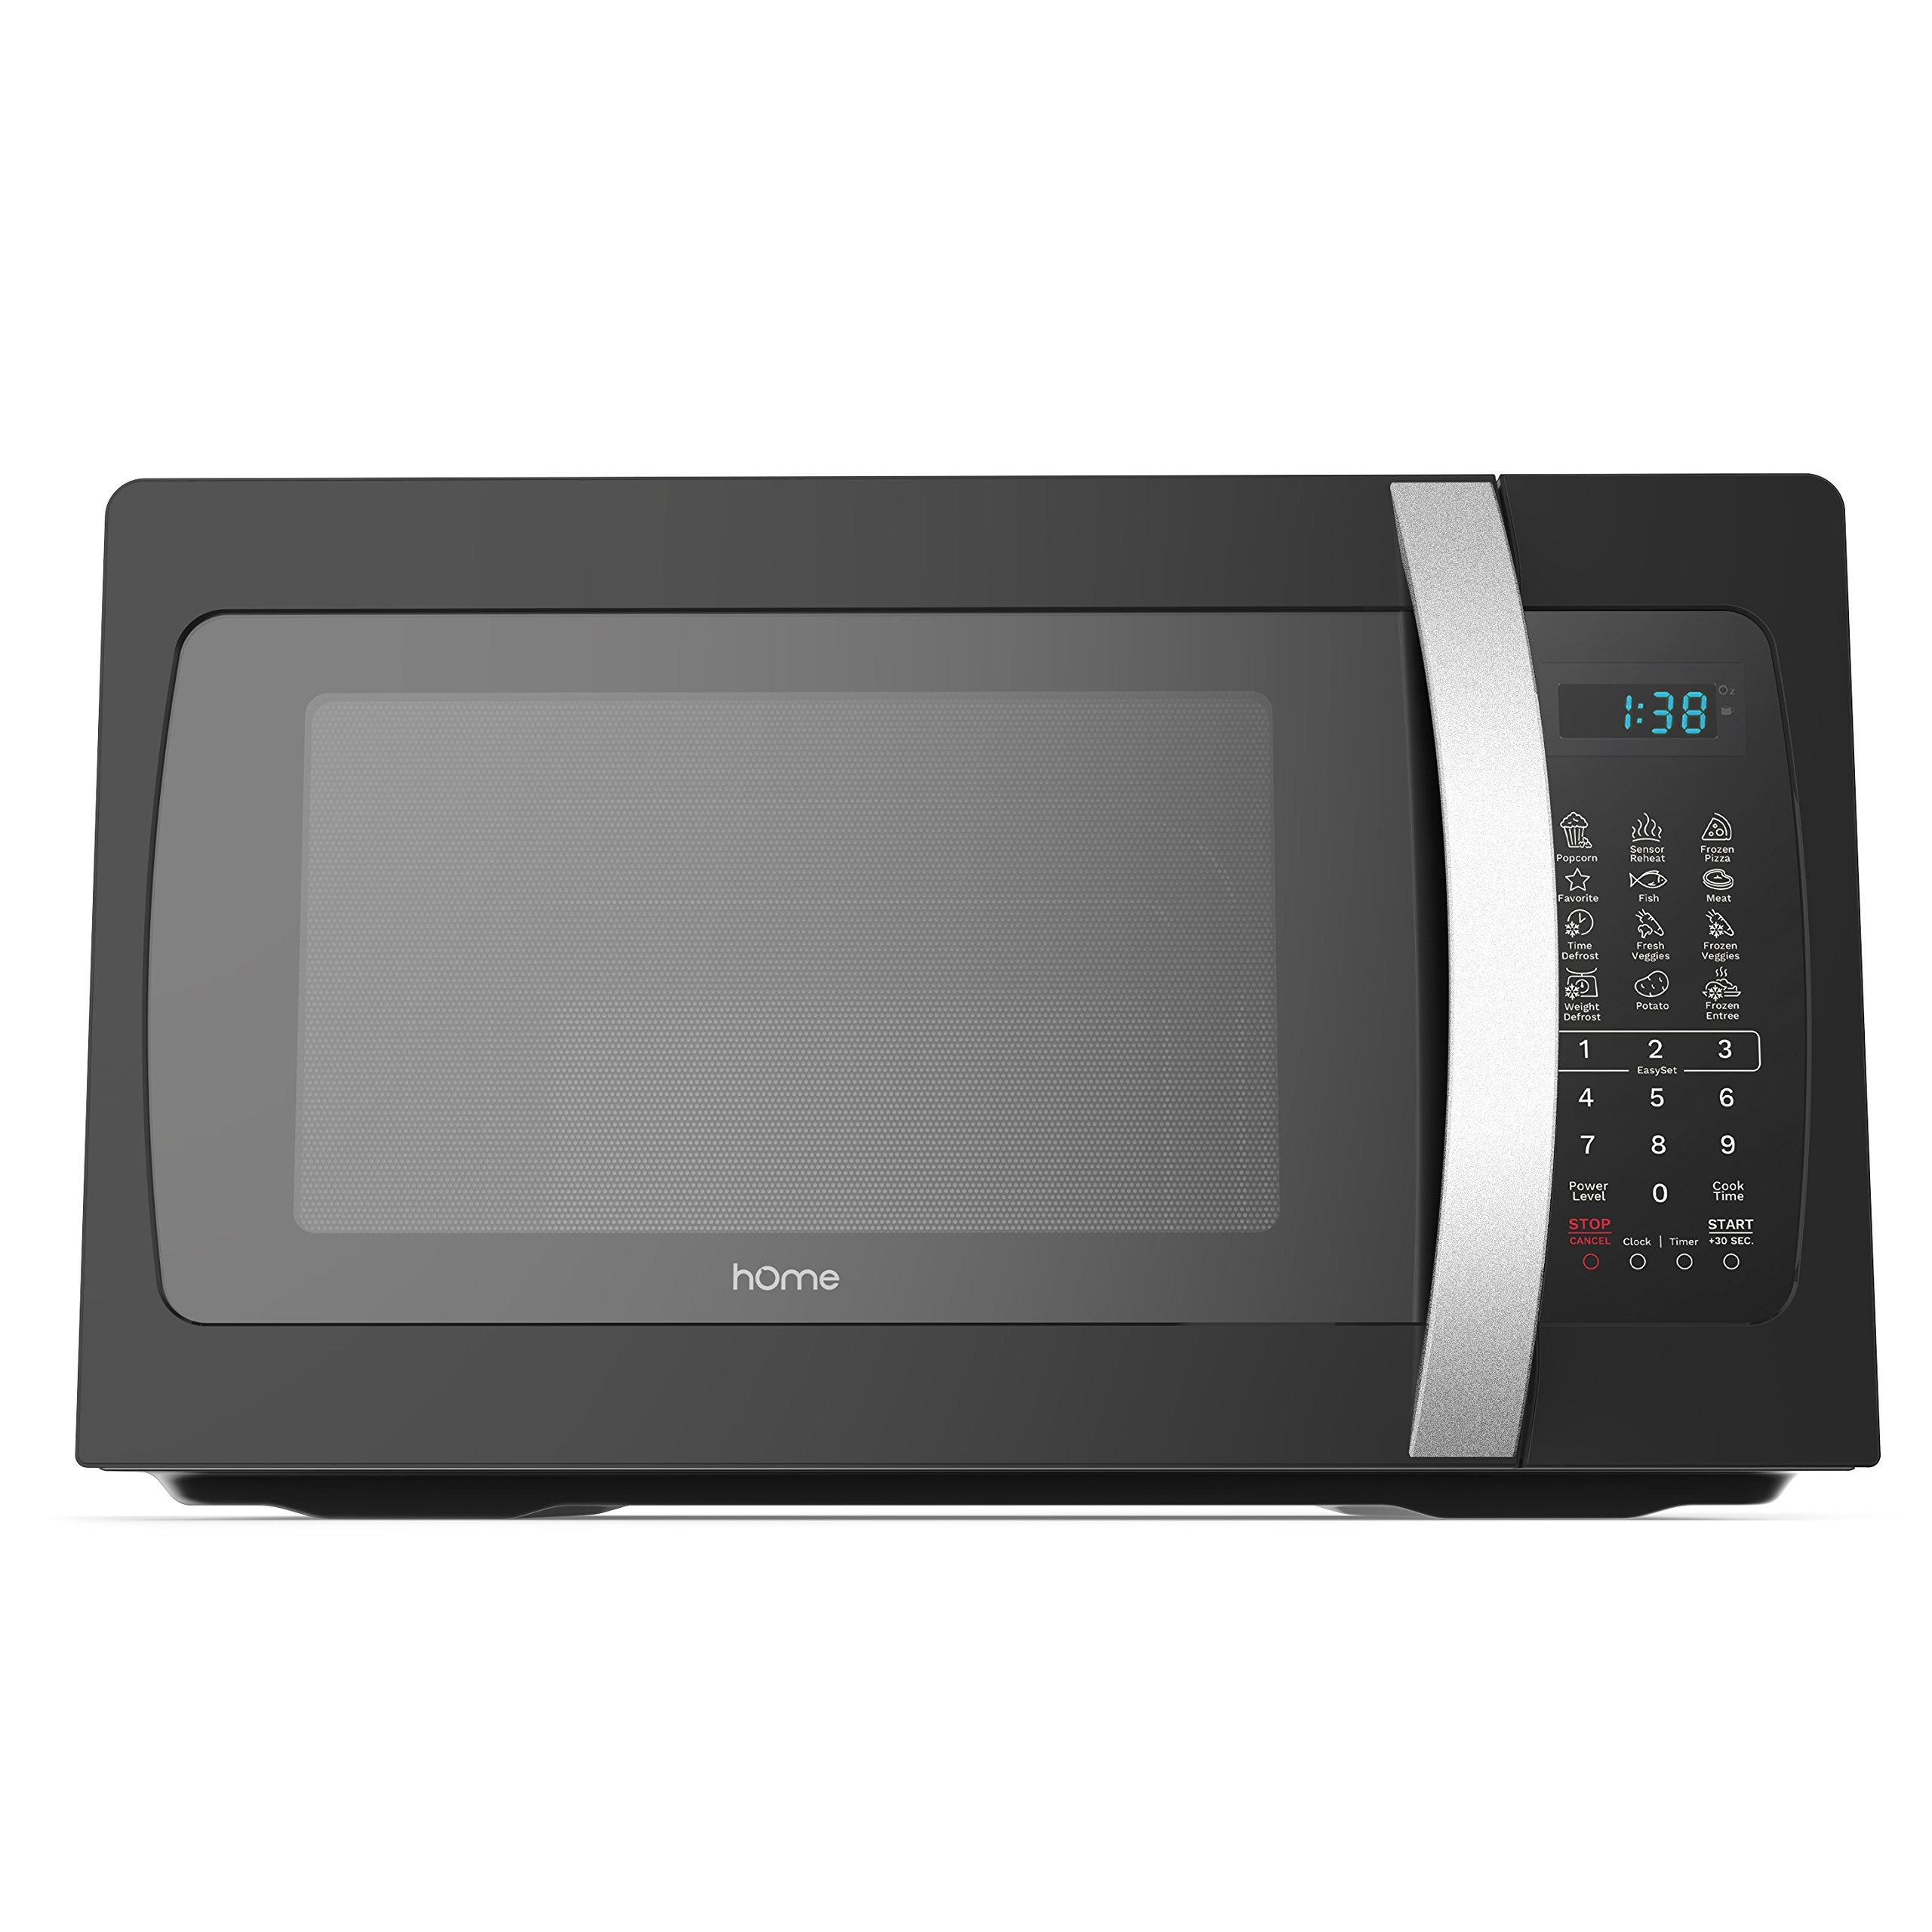 Get Quotations · hOmeLabs 1050 watt Countertop Microwave Oven with  Accessories - Black Stainless Steel Microwave Cooker 1.3 cu